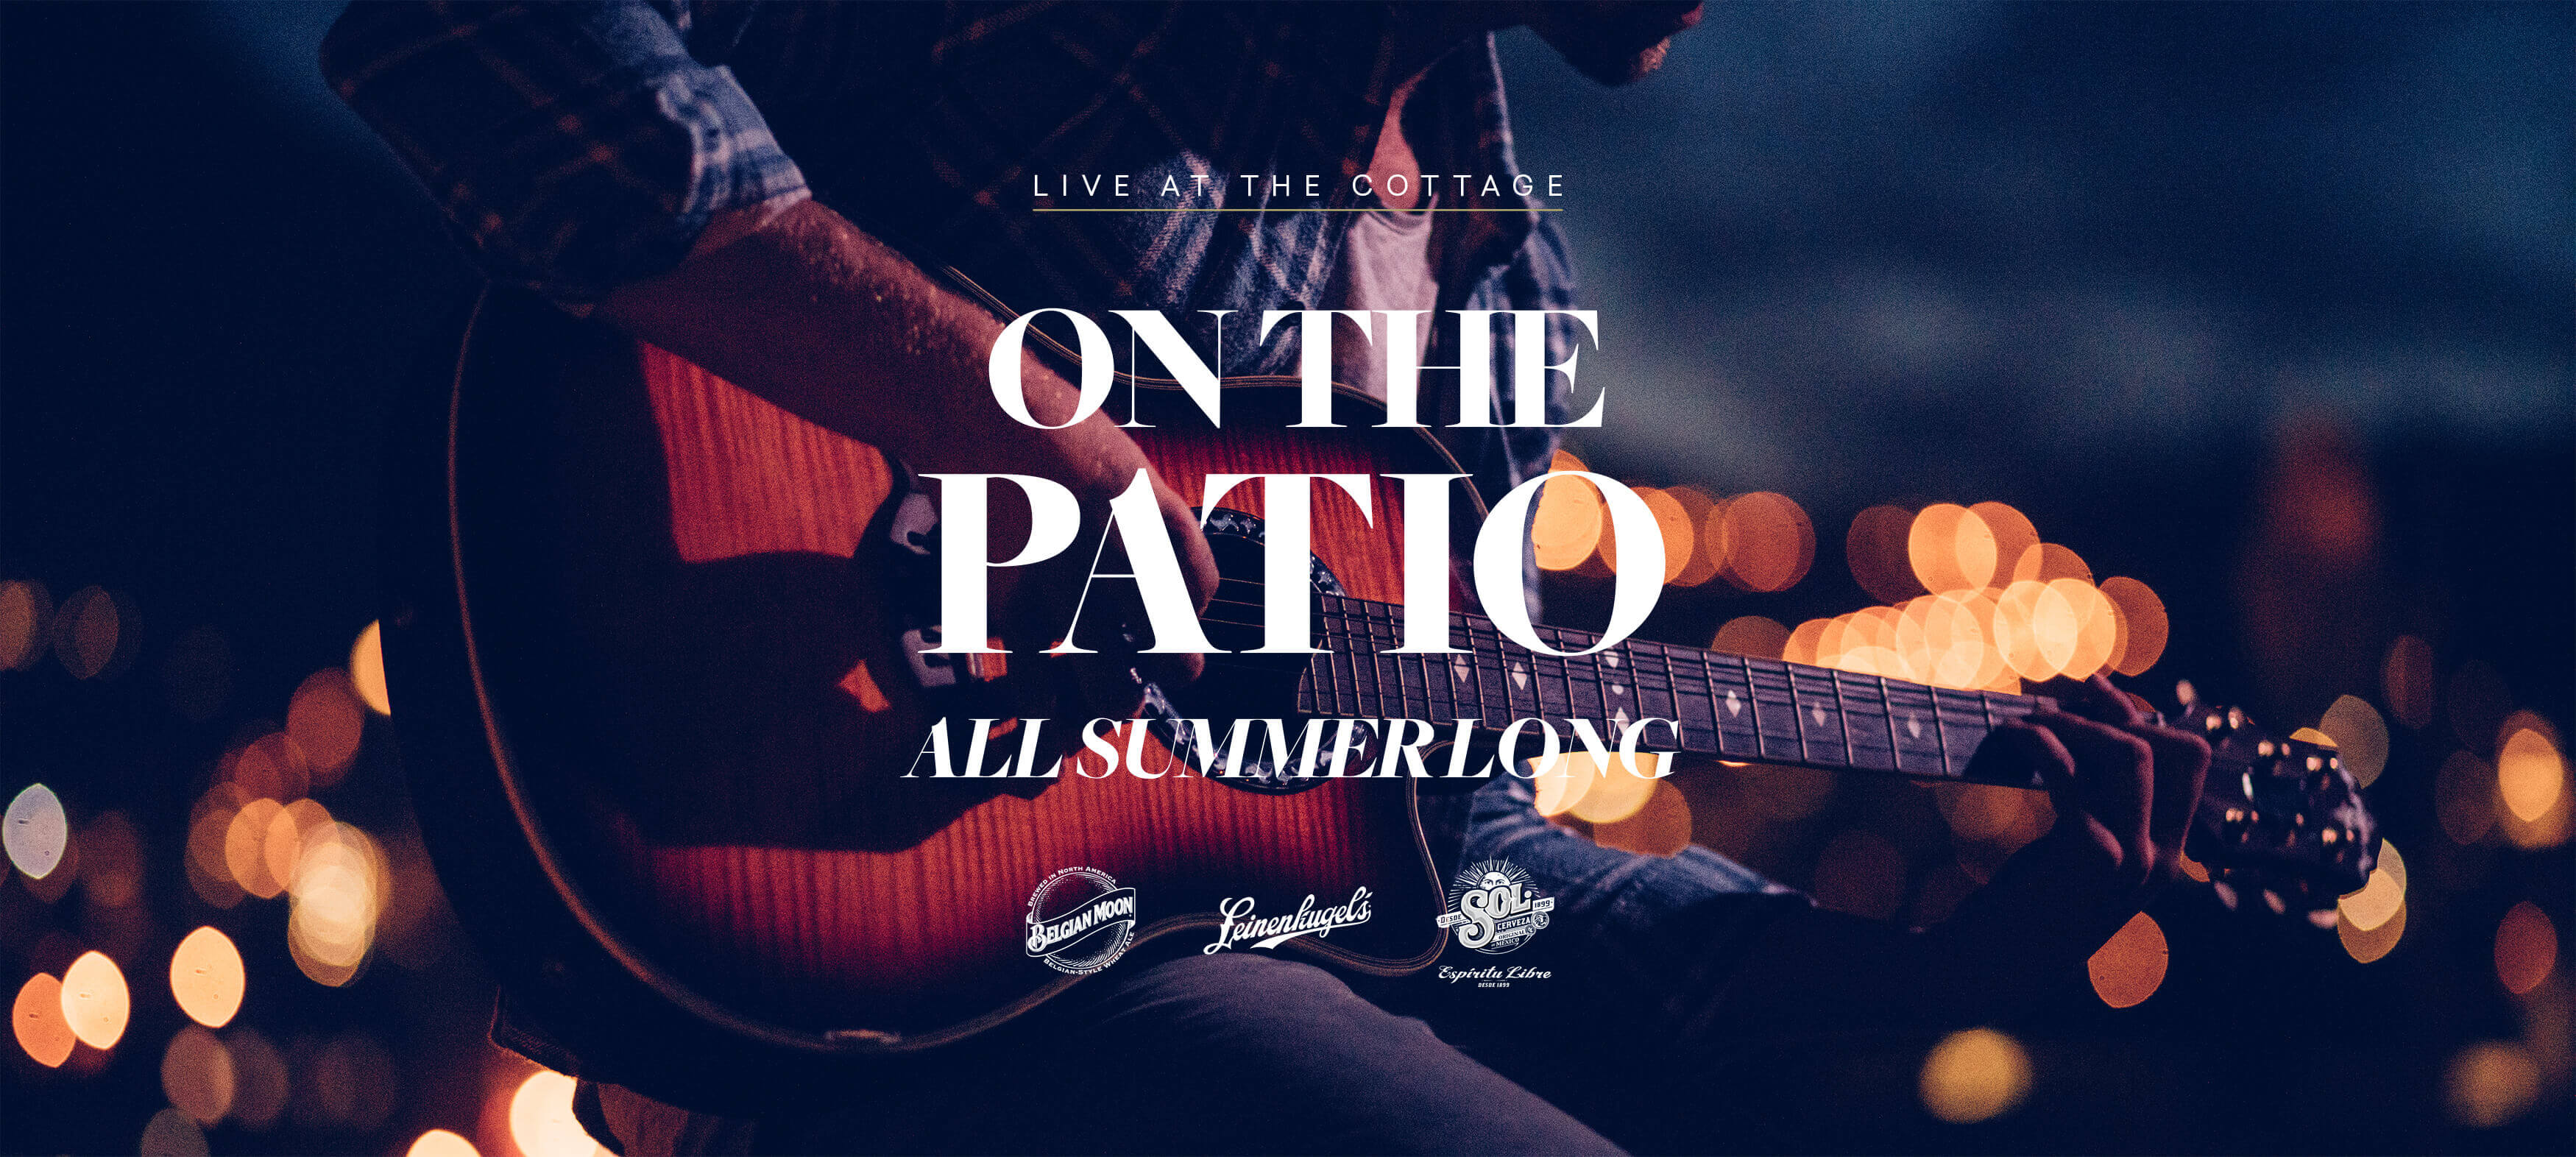 turtle jacks patio partioes all summer long